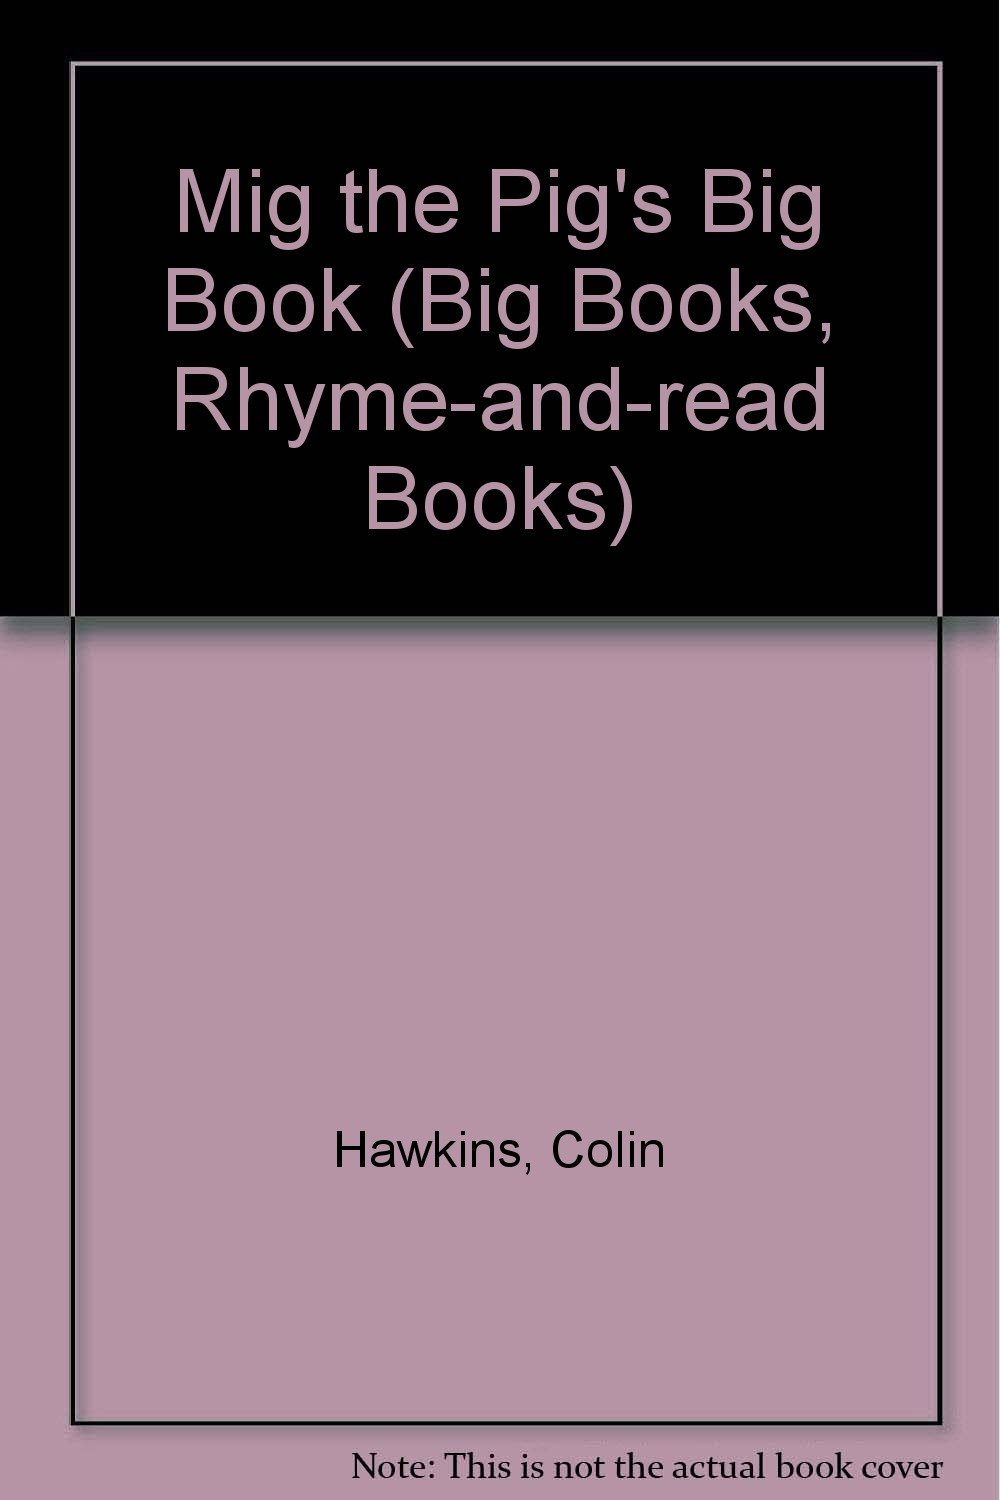 Read Online BIG BOOK: HAWKINS: MIG THE PIG 1st Edition - Cased (Big Books, Rhyme-and-read Books) ebook